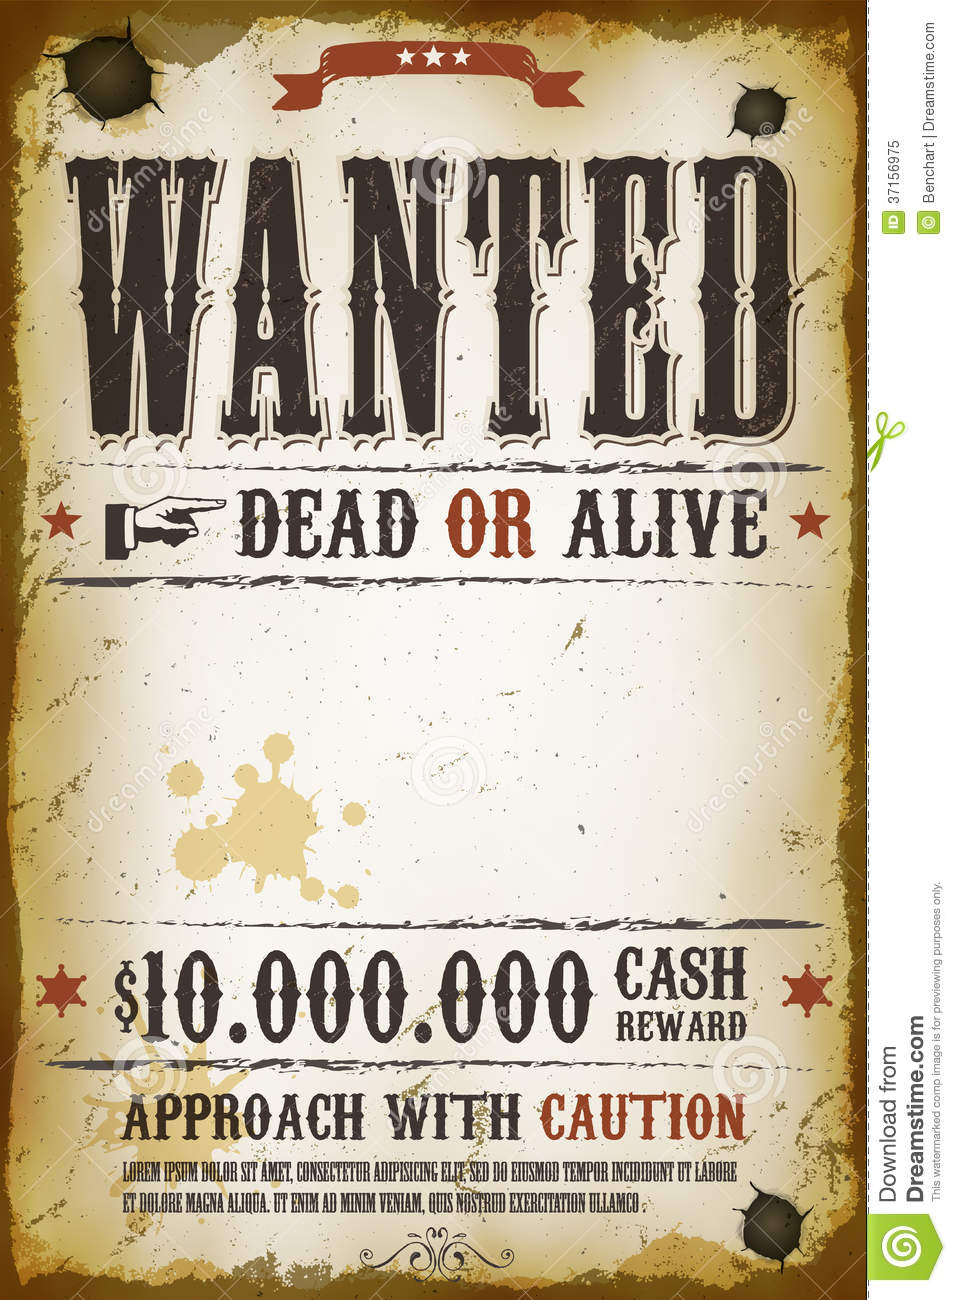 Wanted Reward Template  Most Wanted Poster Templates